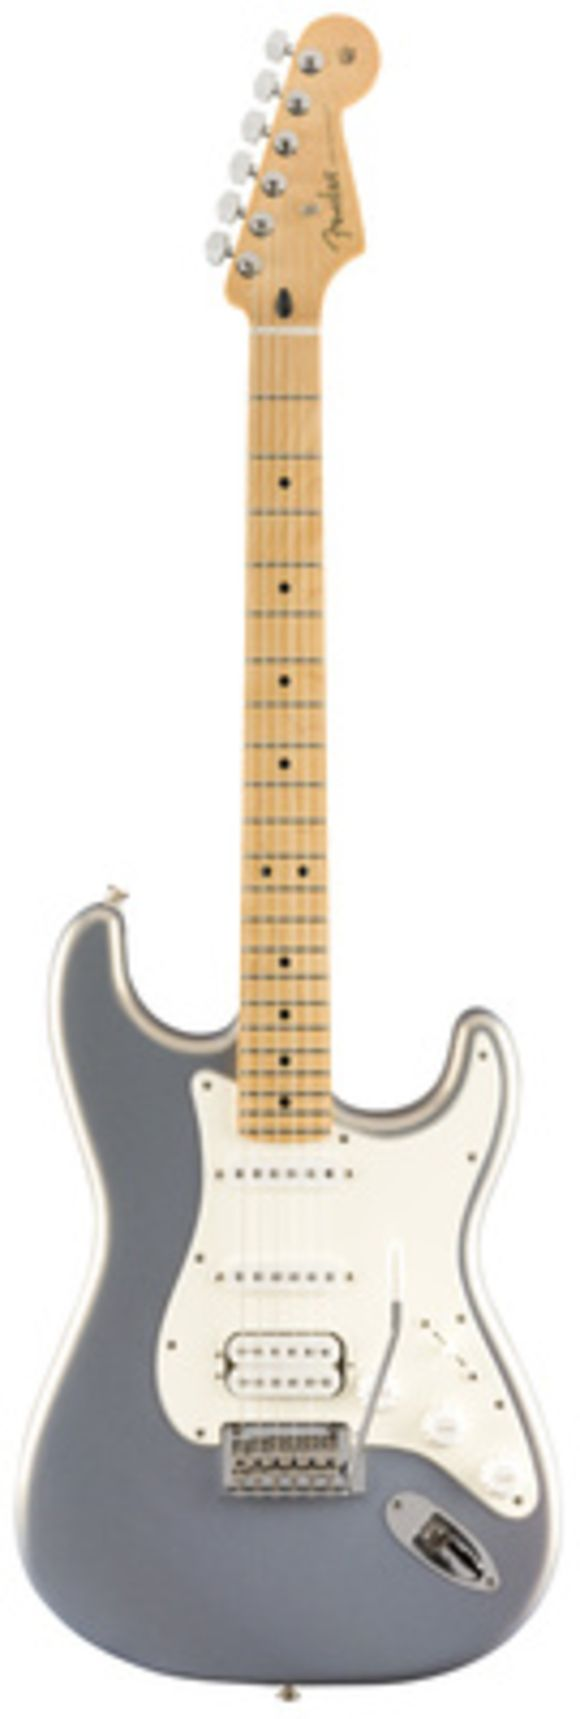 Player Ser Strat HSS MN Slv Fender